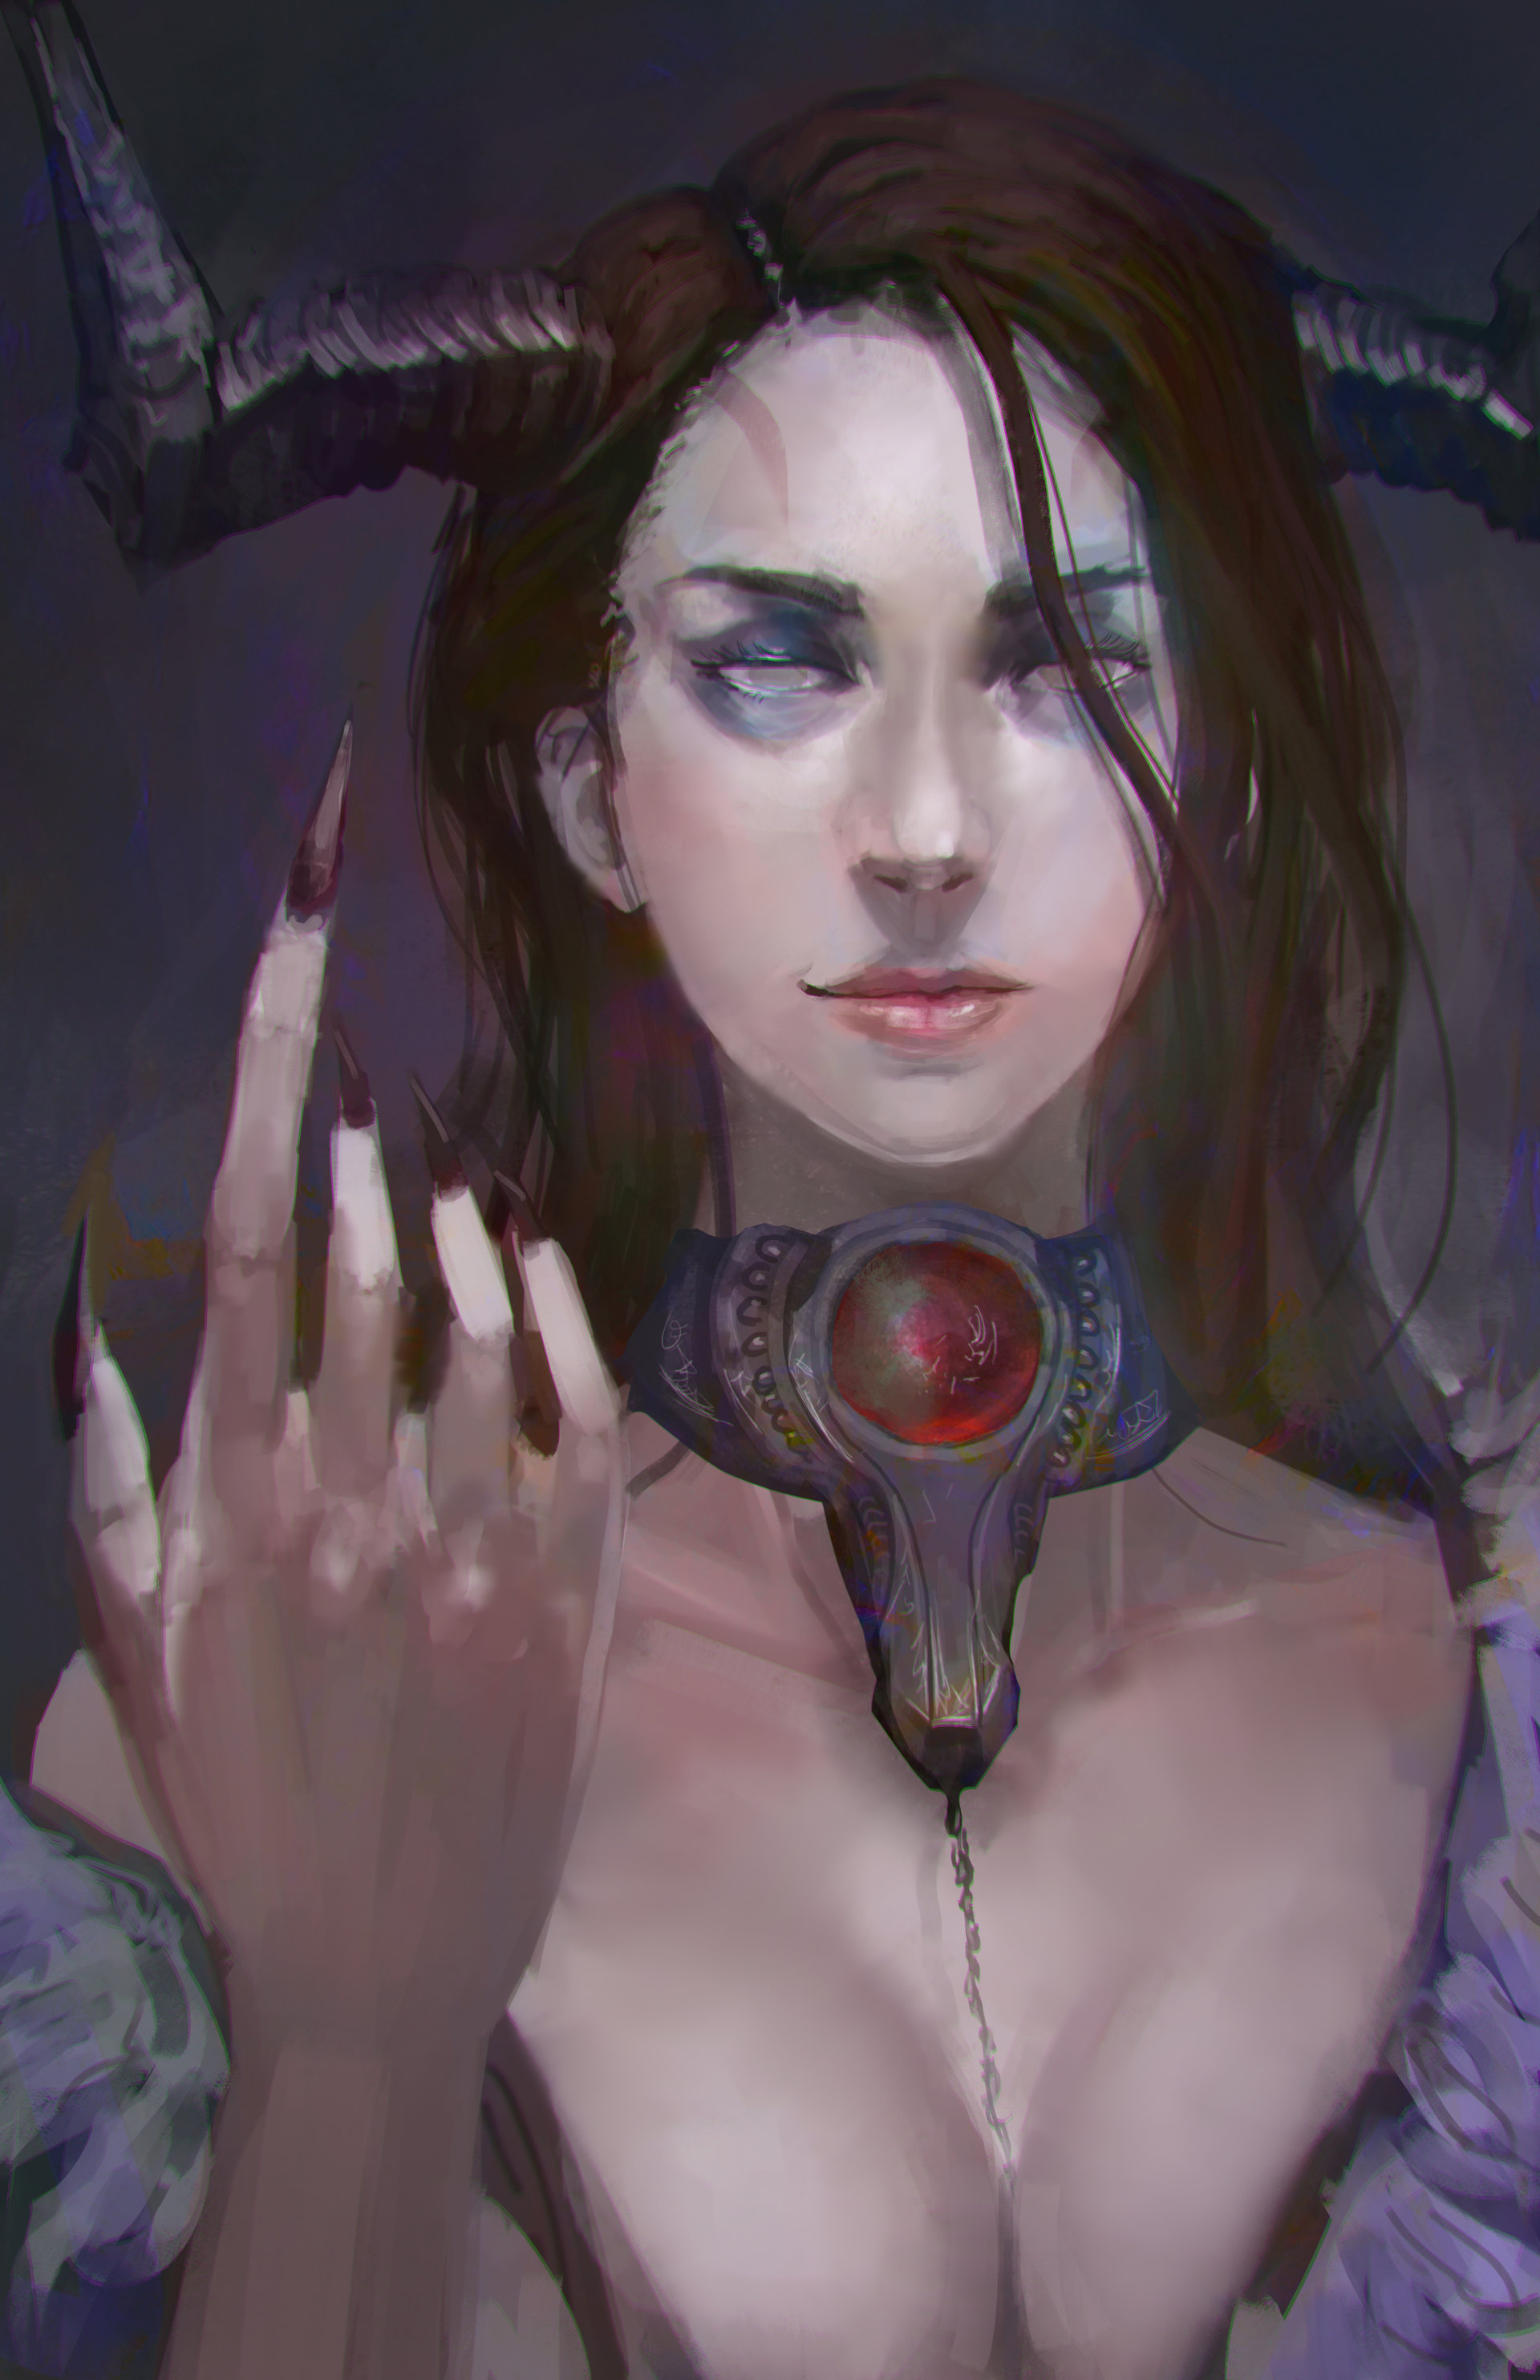 Jeff chen succubus close up